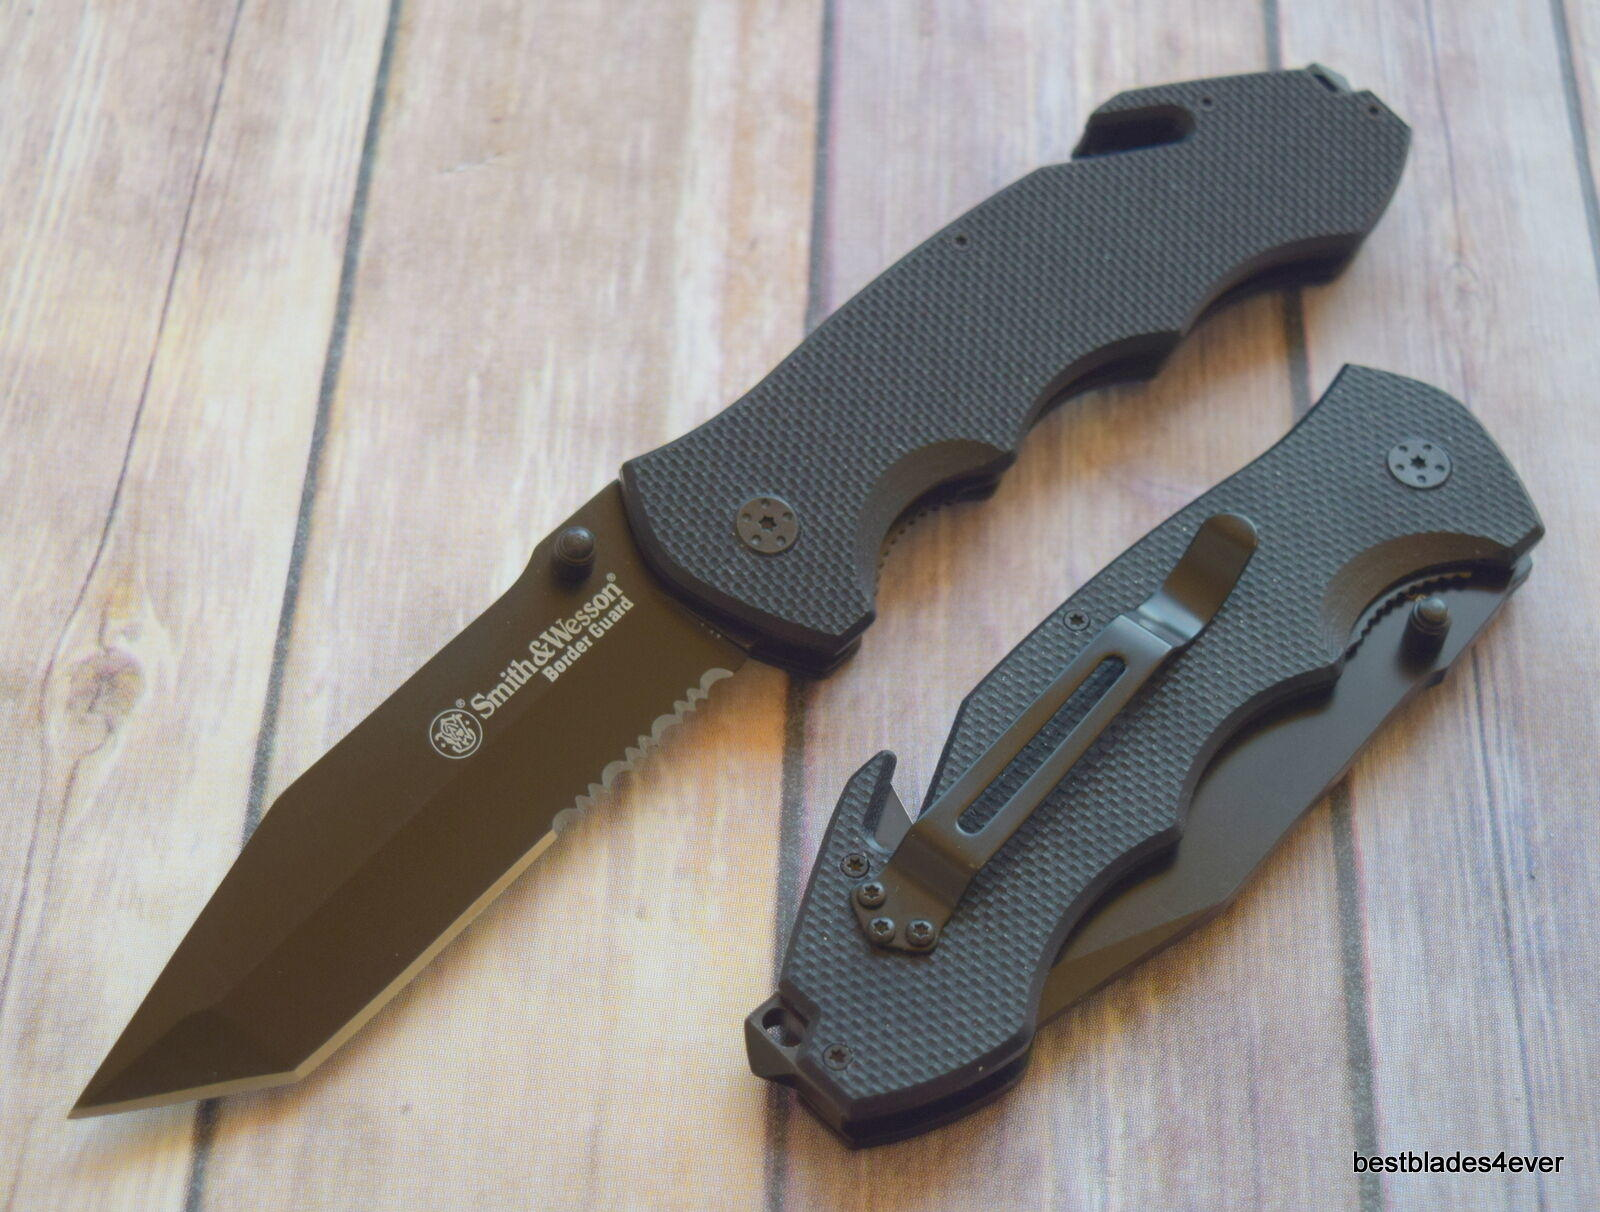 Smith & Wesson jumbo folding pocket knife